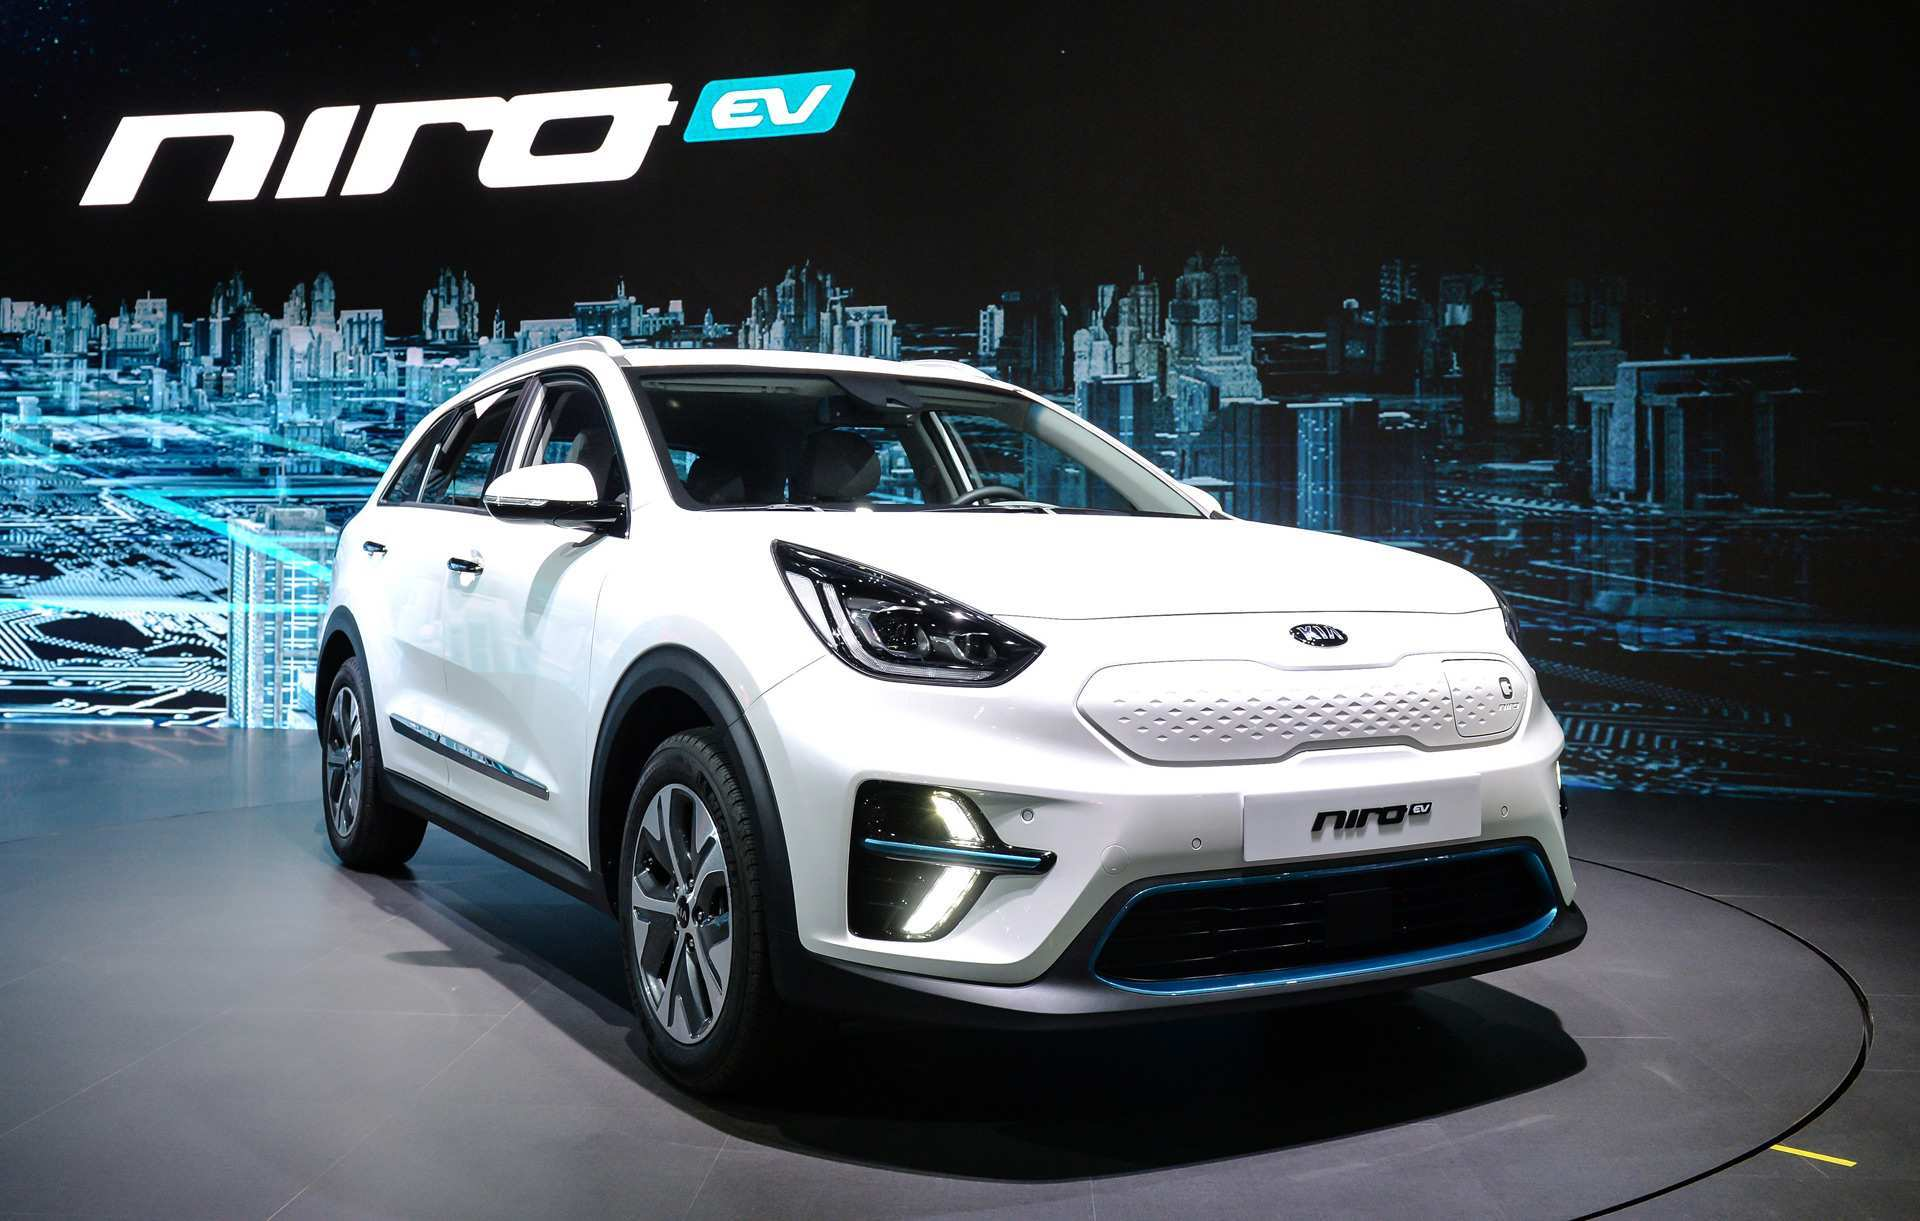 15 Gallery of Niro Kia 2020 Reviews with Niro Kia 2020